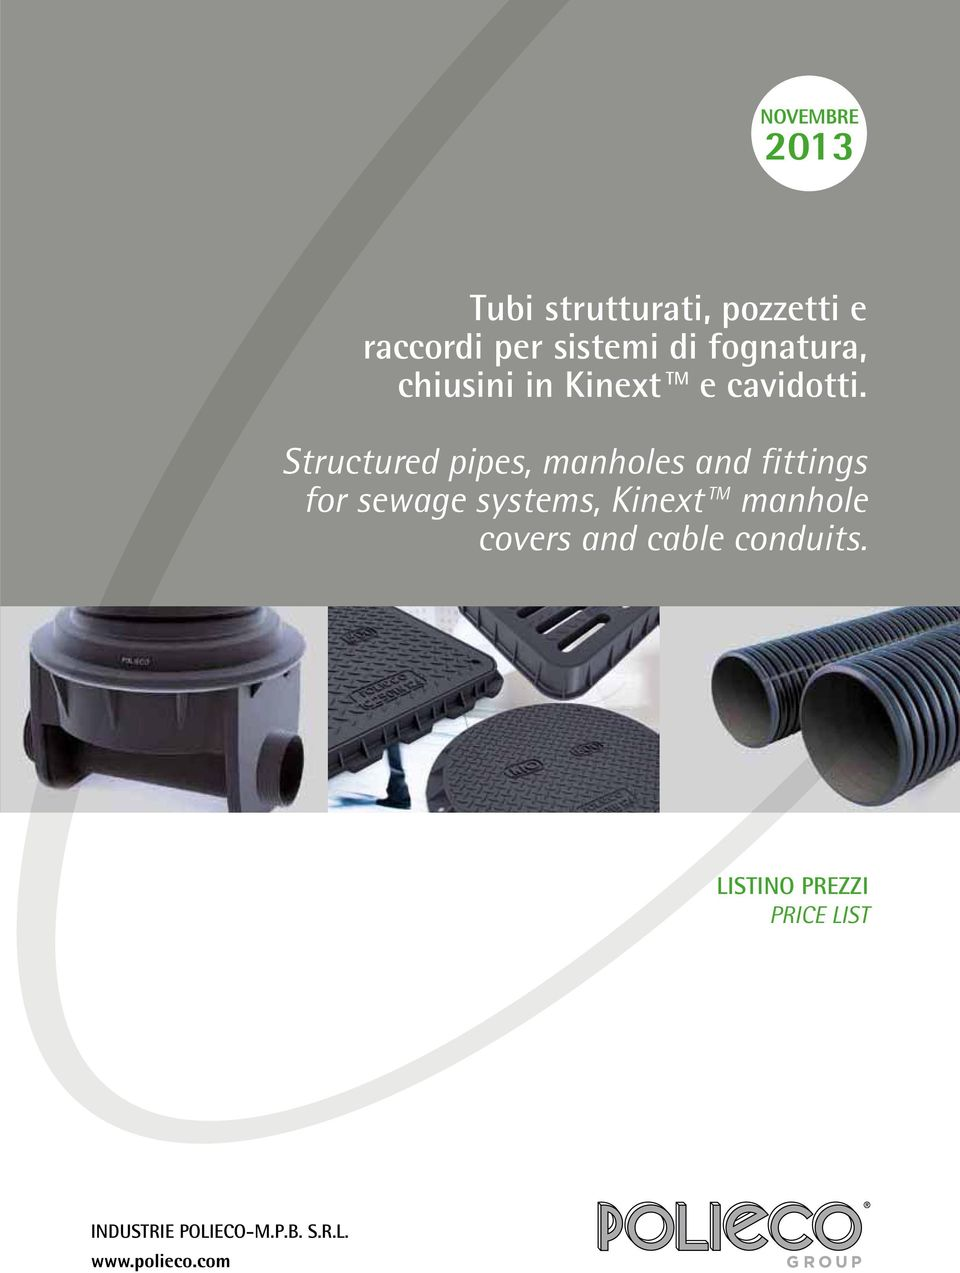 Structured pipes, manholes and fittings for sewage systems, Kinext TM